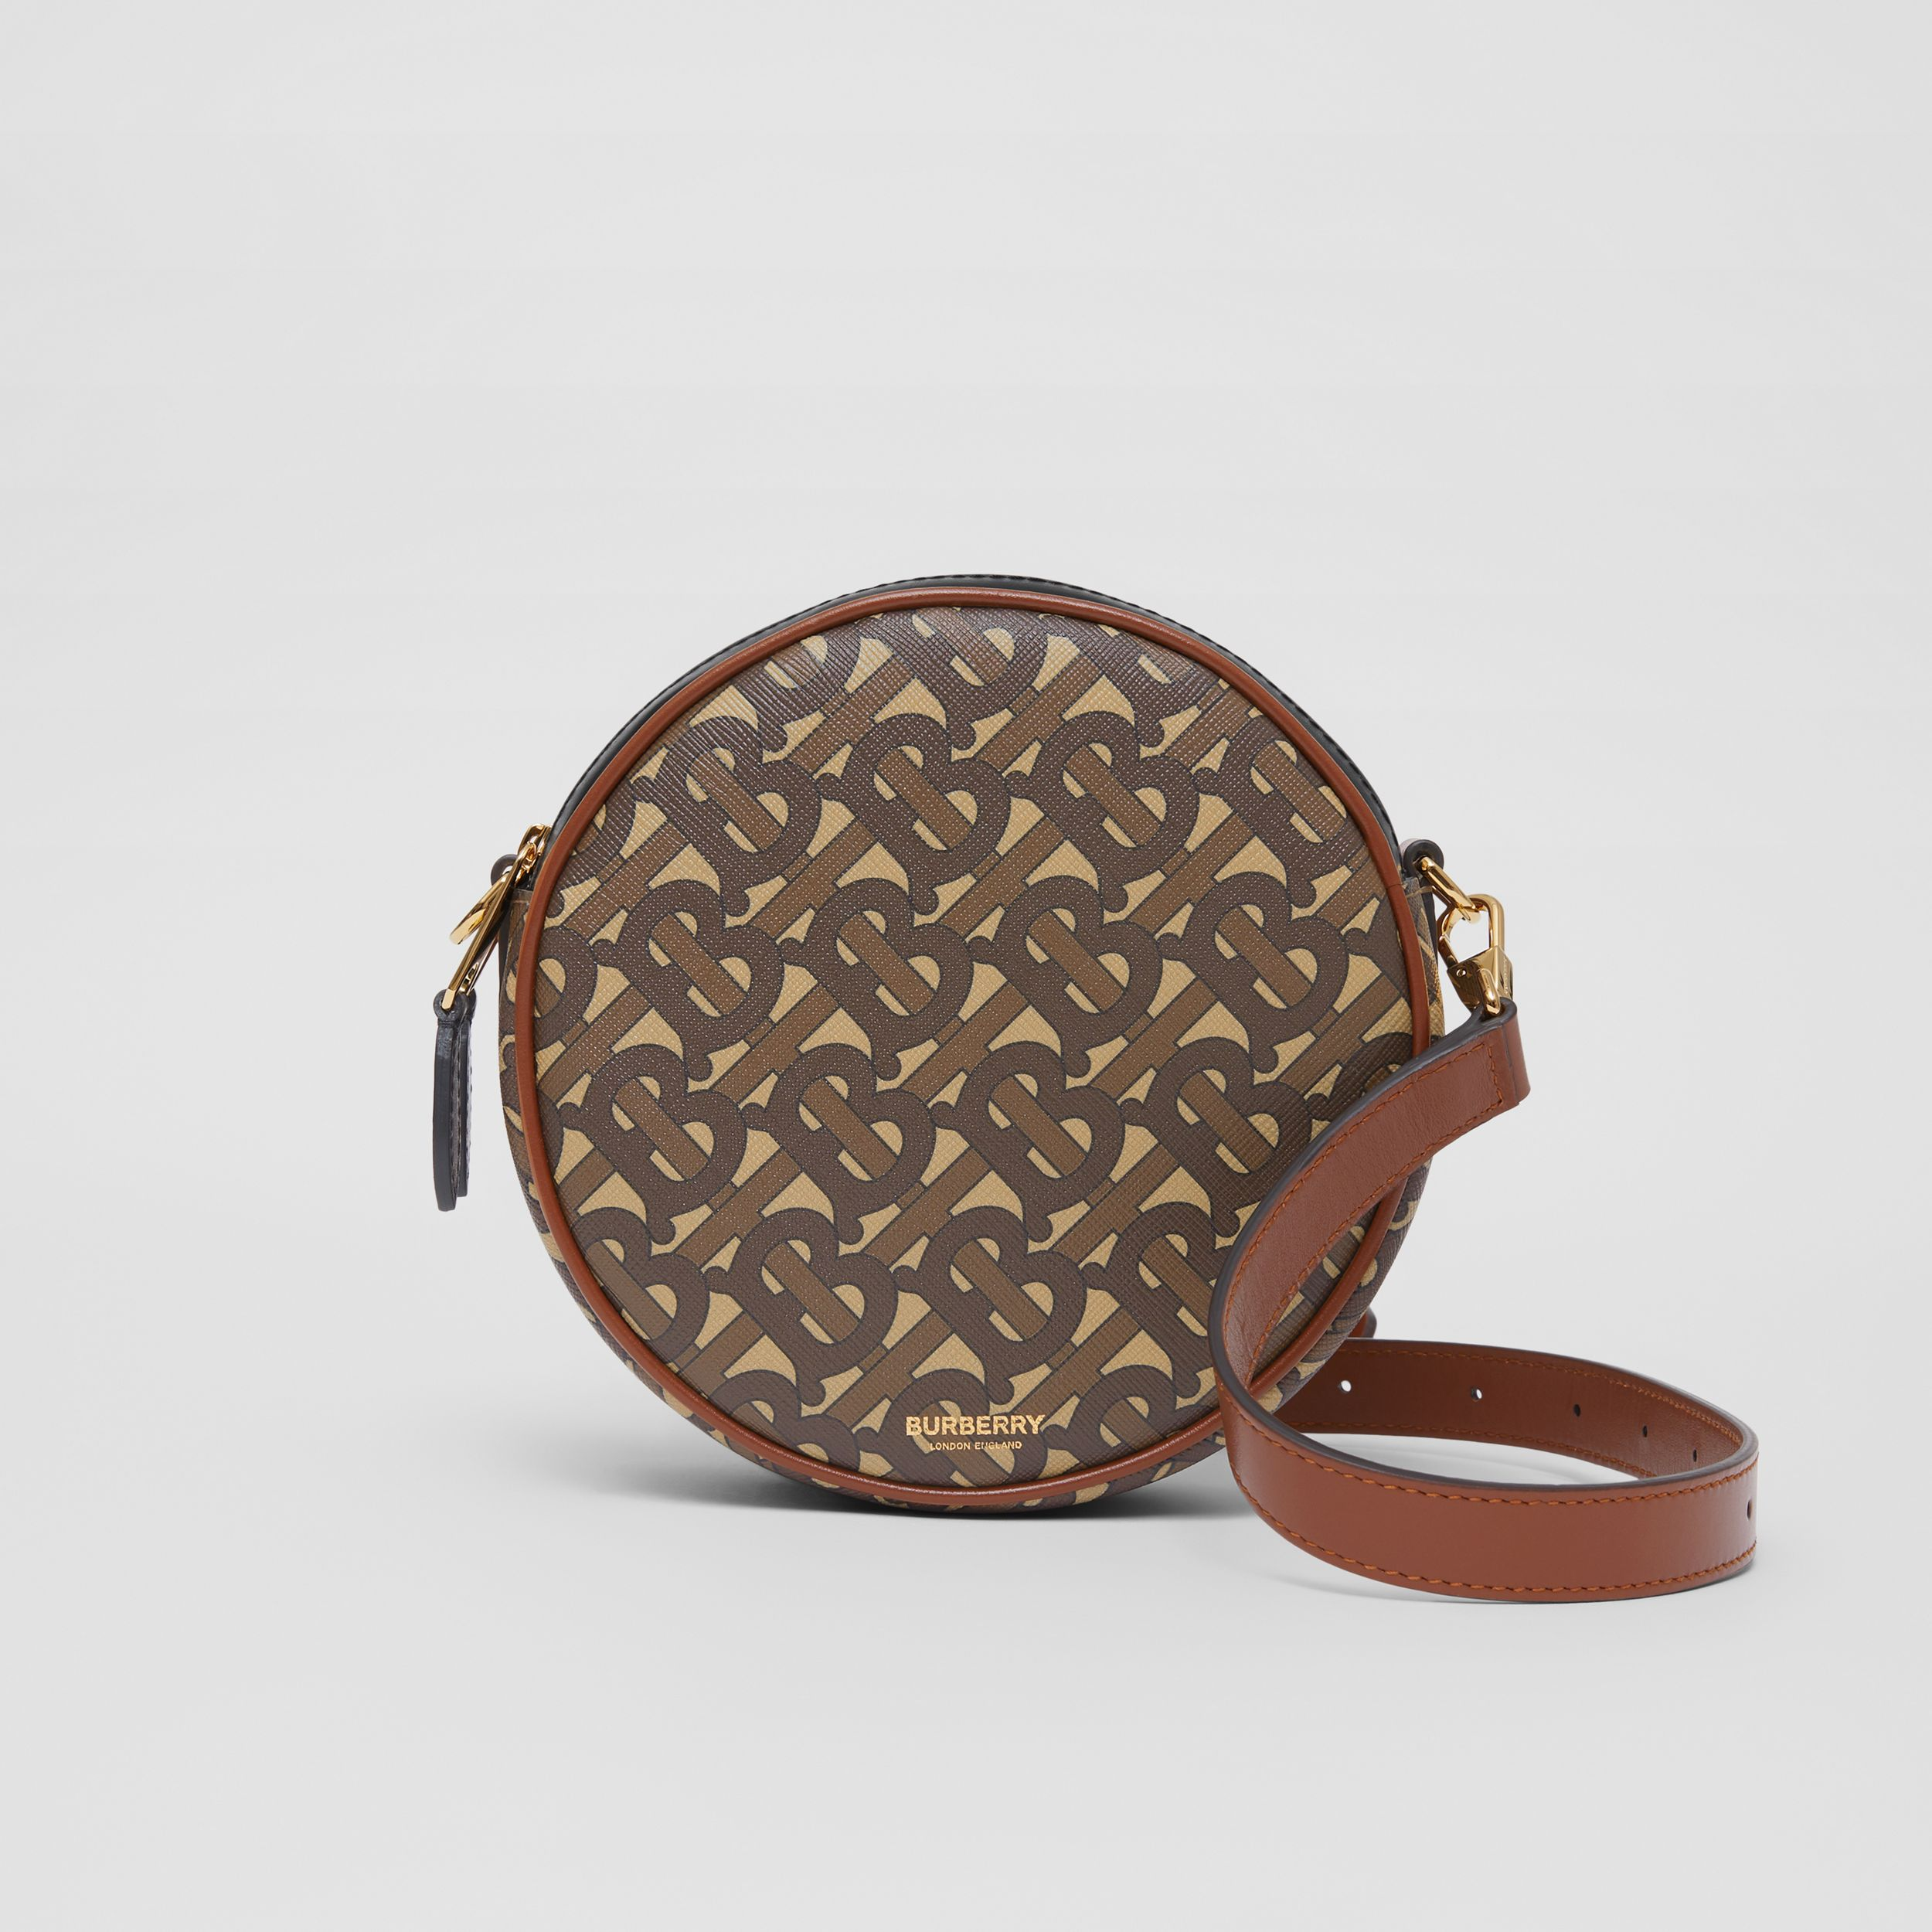 Monogram Print E-canvas Louise Bag in Bridle Brown - Women | Burberry Hong Kong S.A.R. - 1